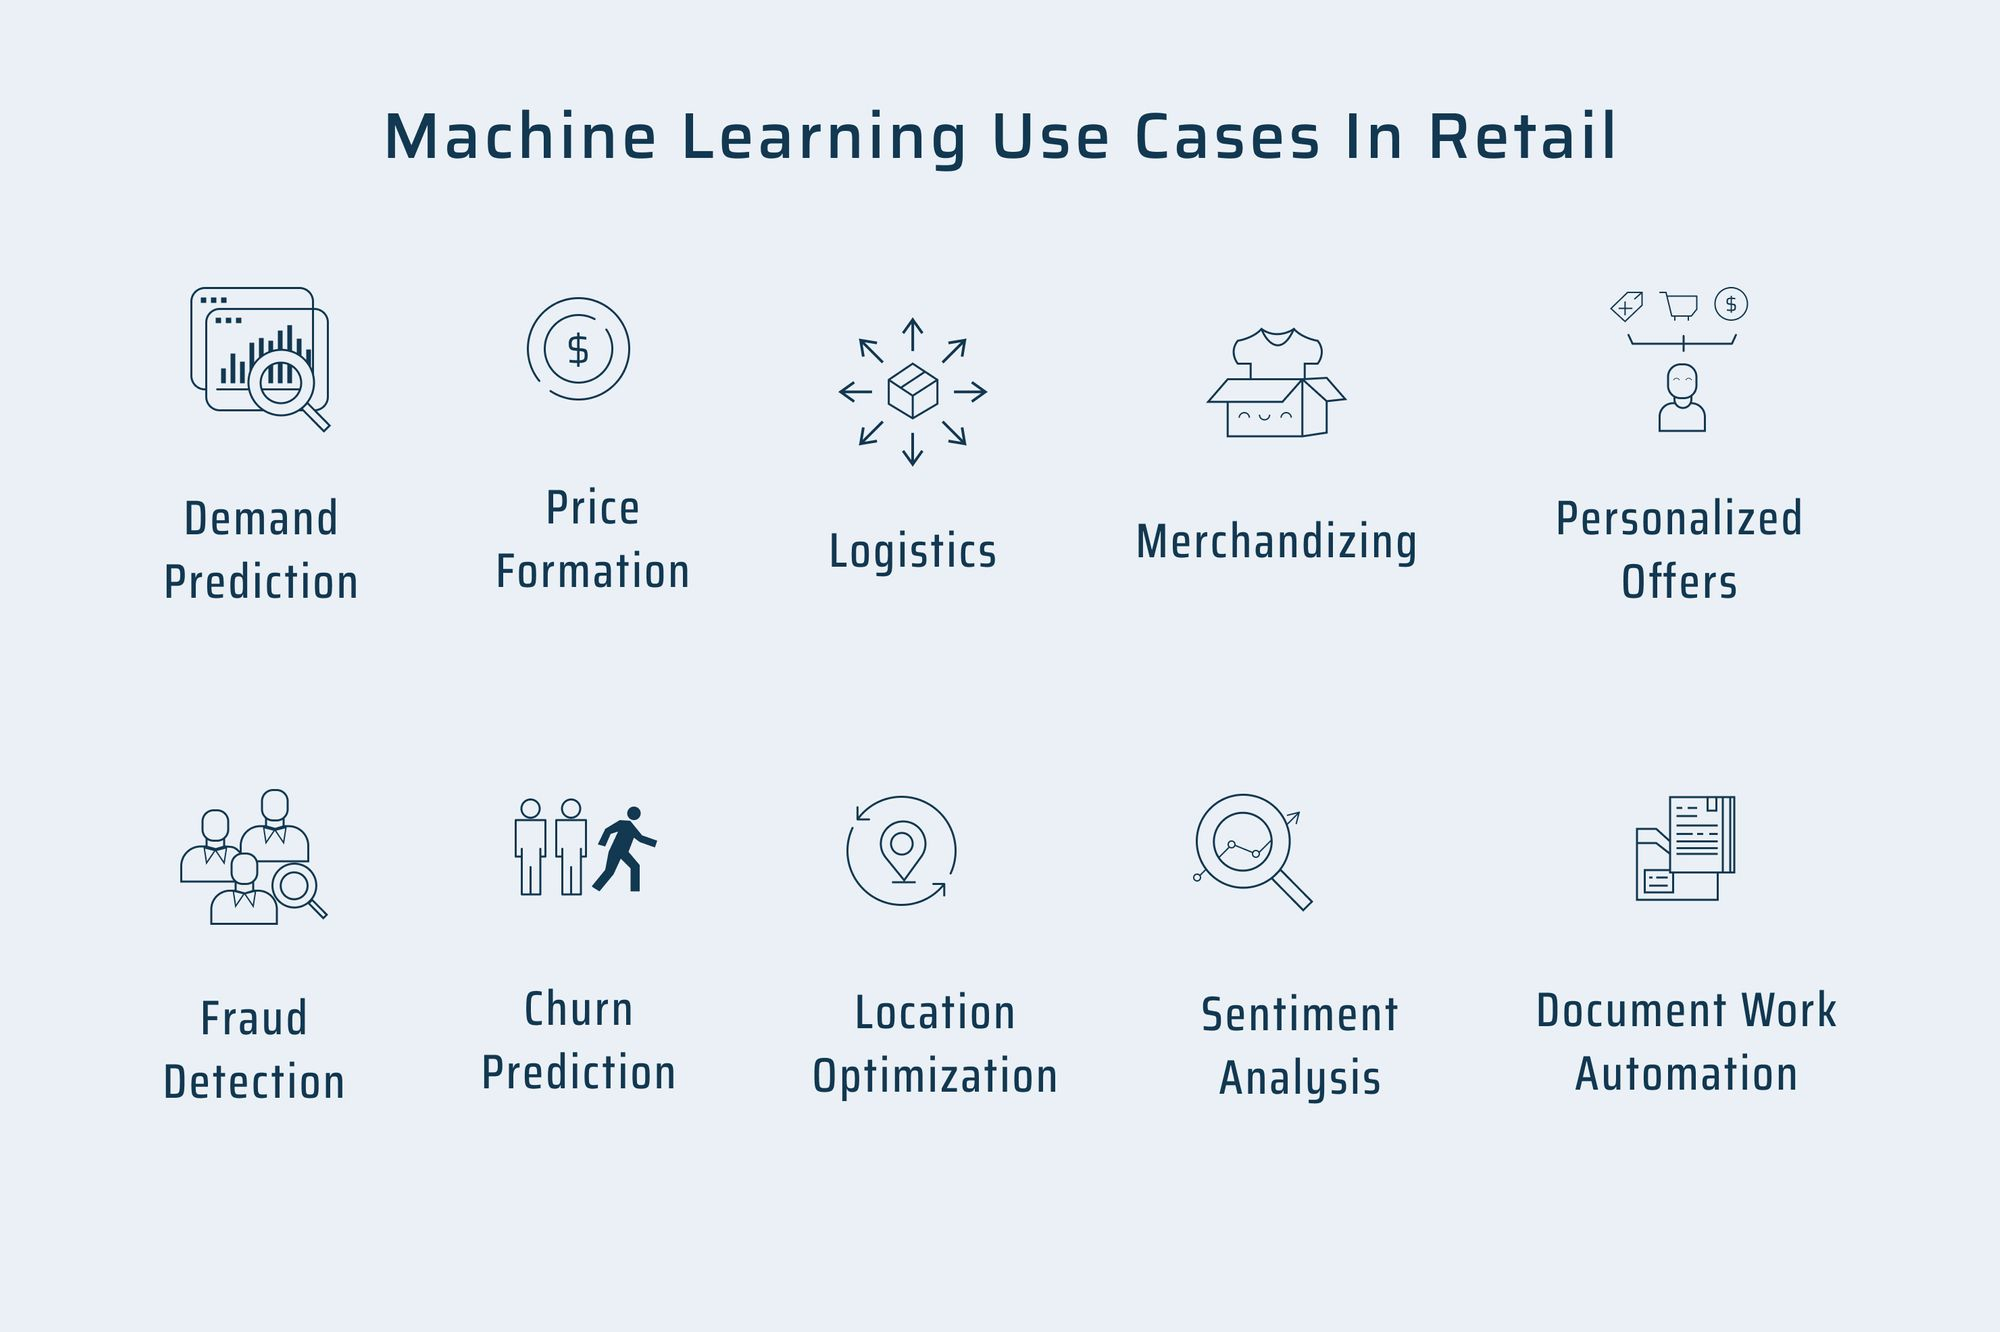 Machine Learning Use Cases In Retail